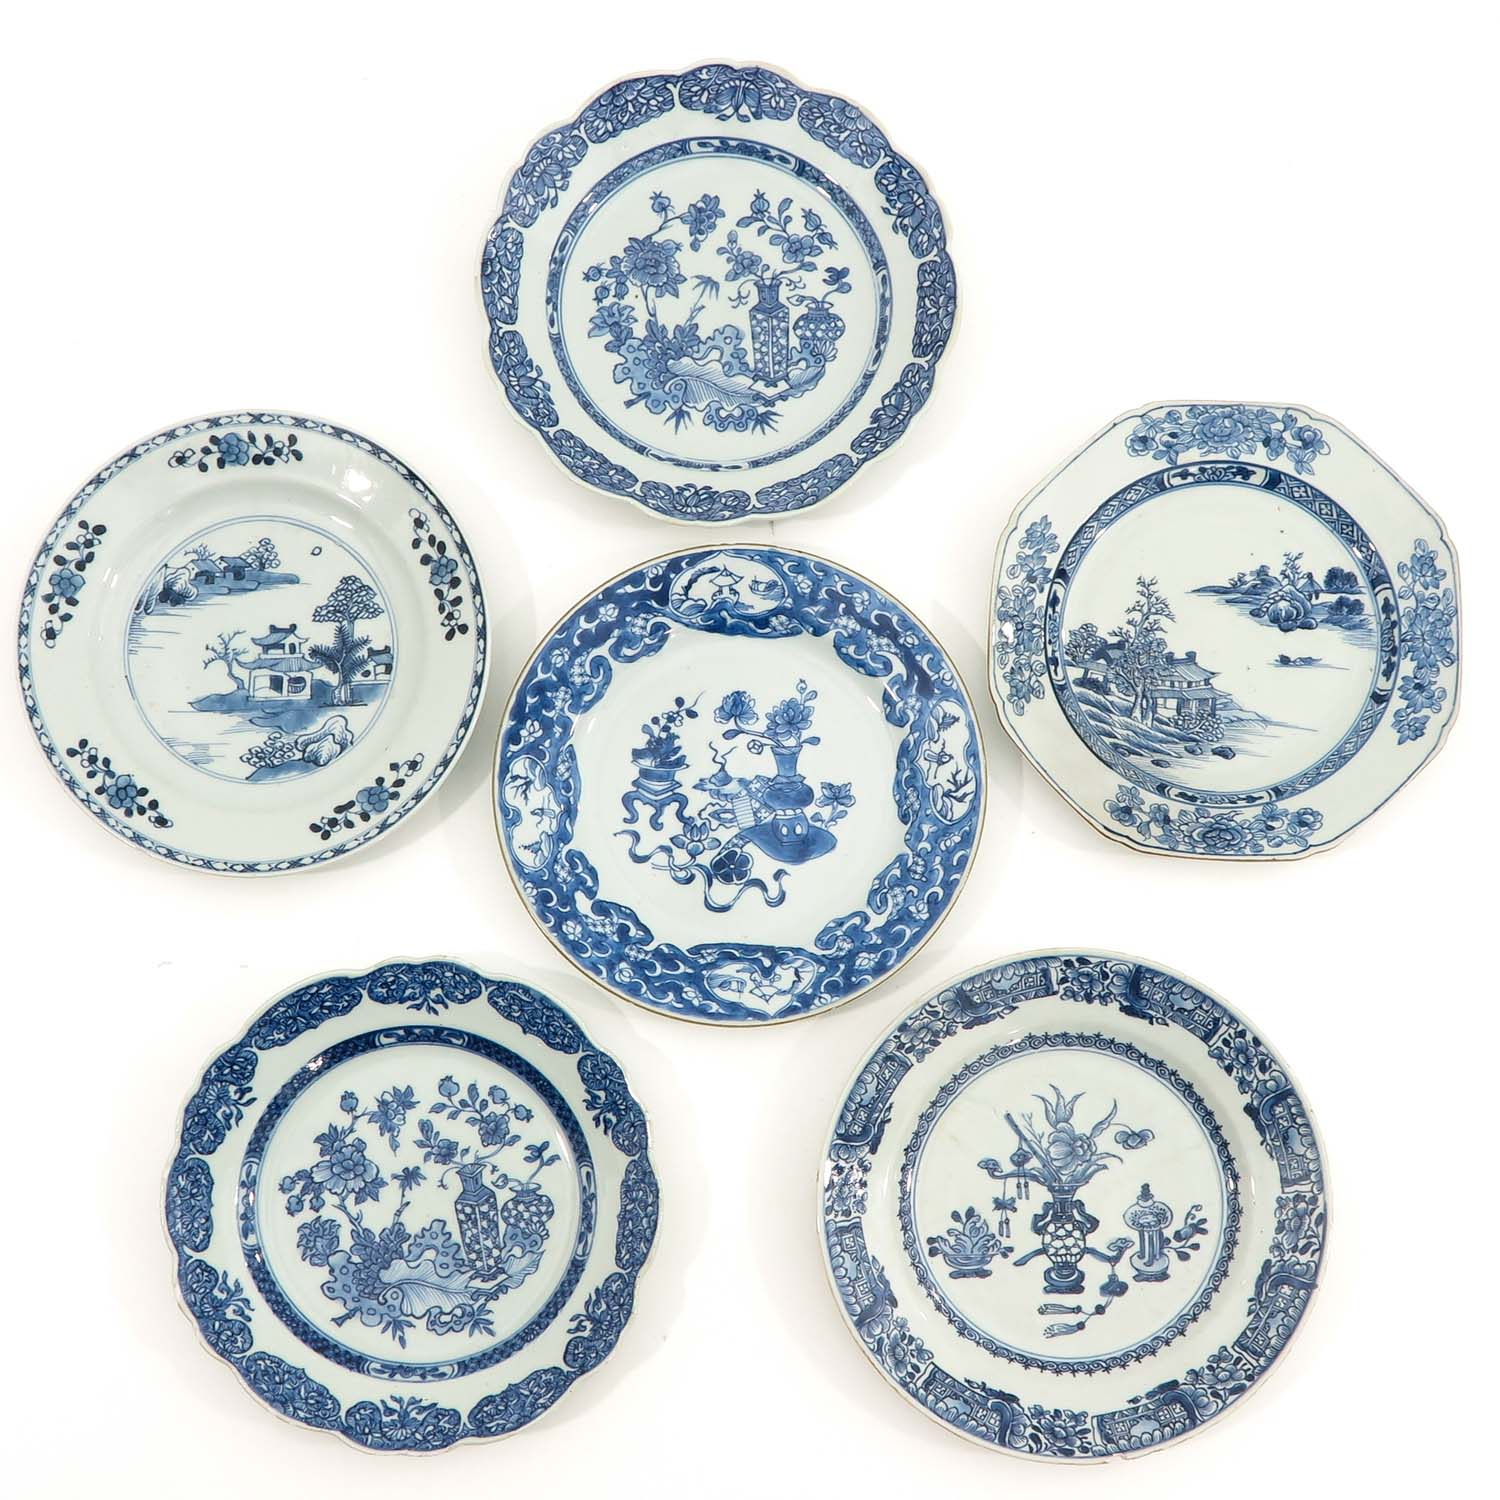 A Set of 6 Blue and White Plates